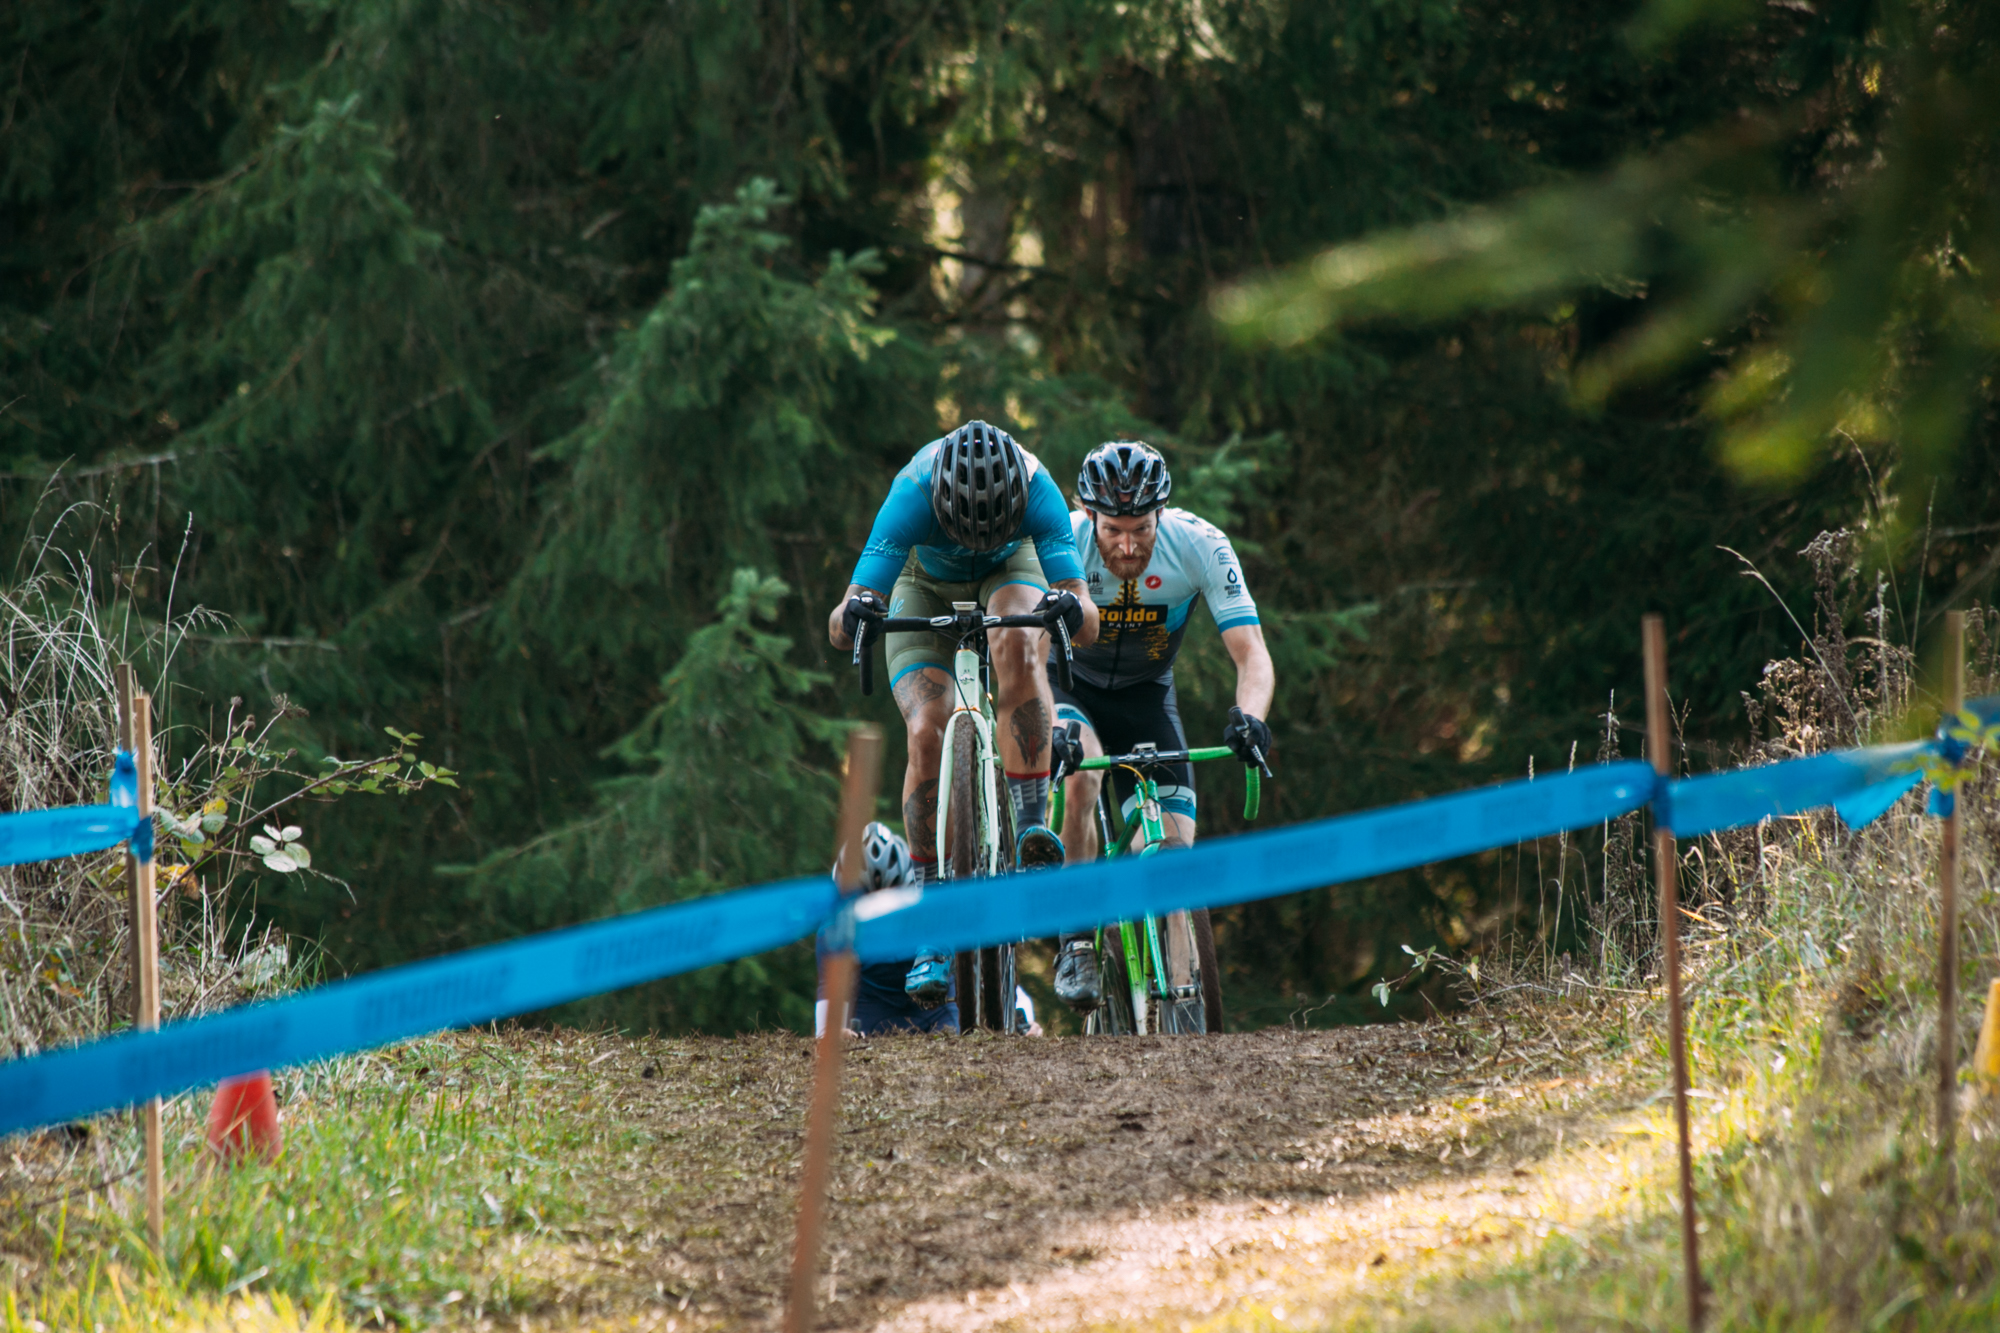 Cyclocross18_CCCX_RainierHS-122-mettlecycling.jpg